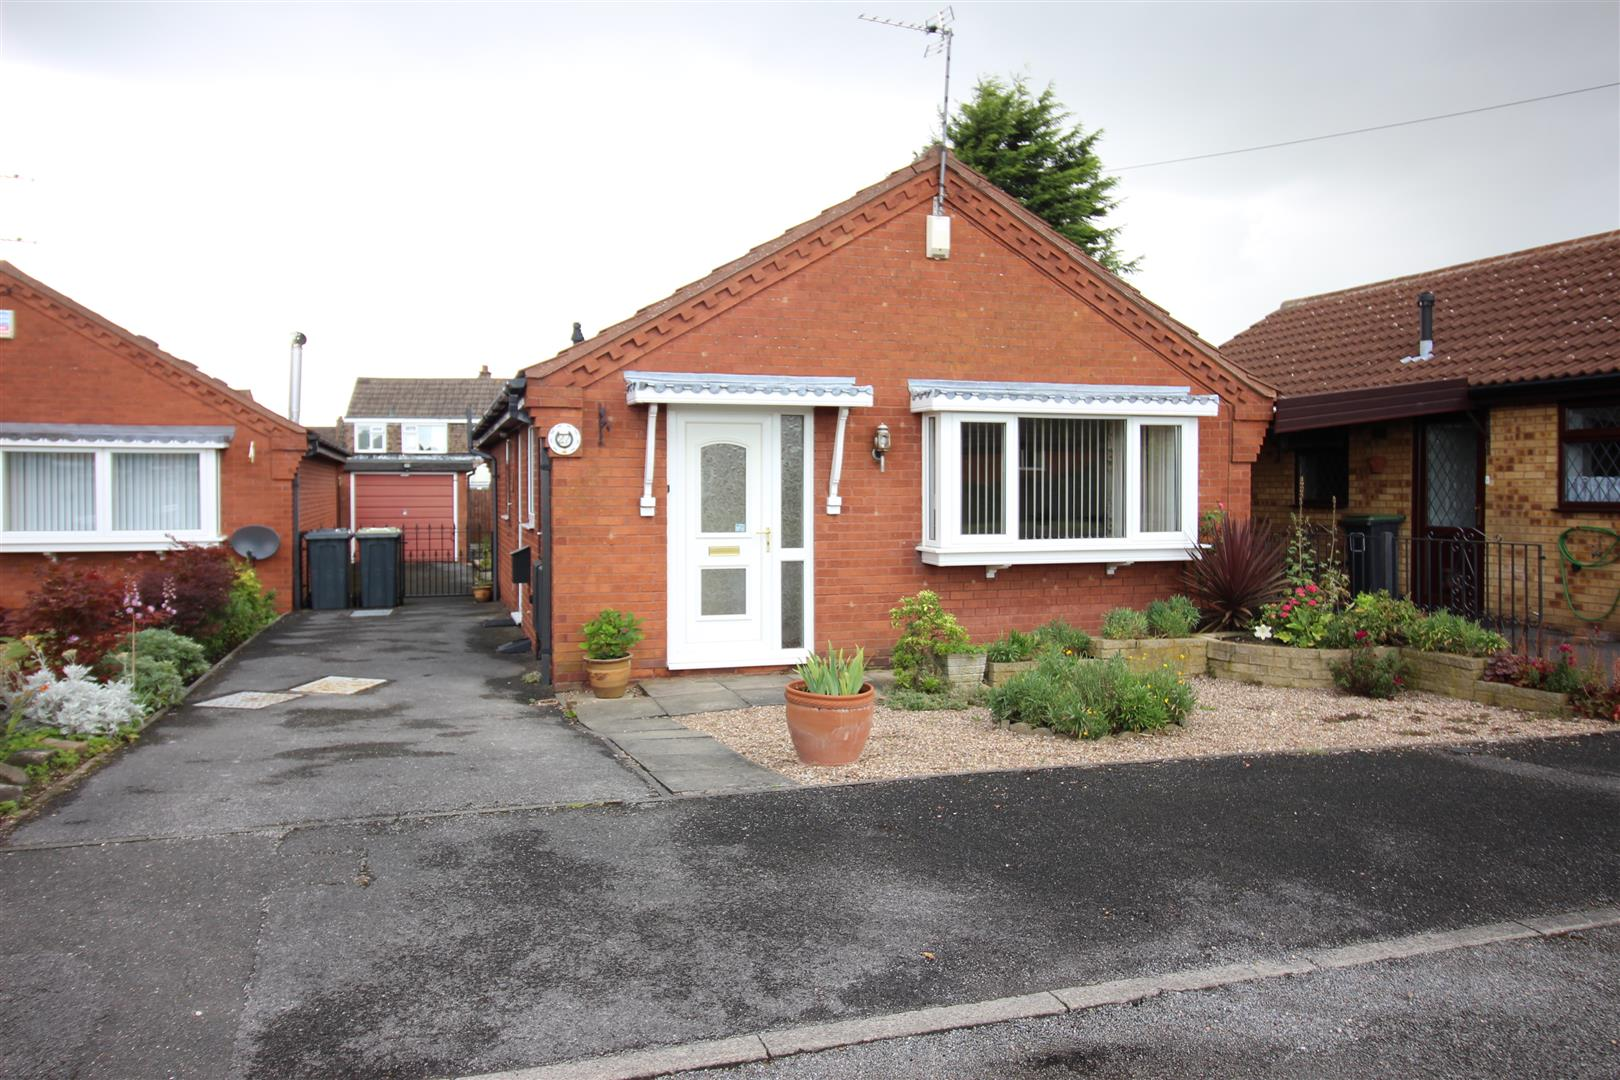 2 Bedrooms Bungalow for sale in Winterbourne Drive, Stapleford